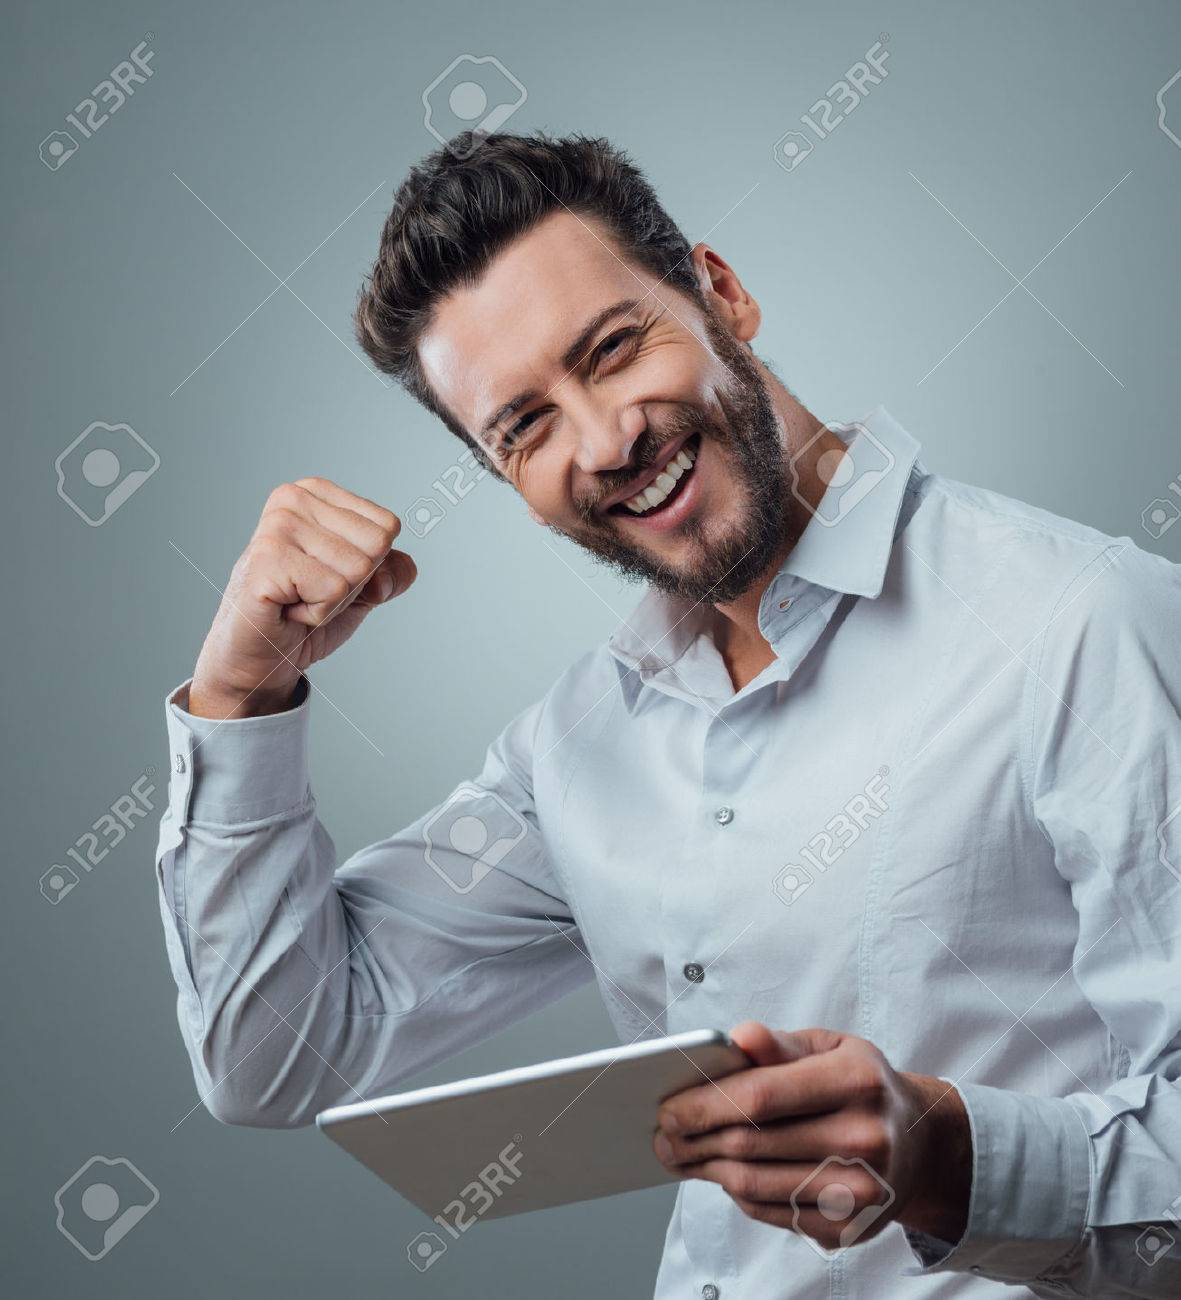 Cheerful smiling man receiving good news on tablet with fist raised Stock Photo - 48738853